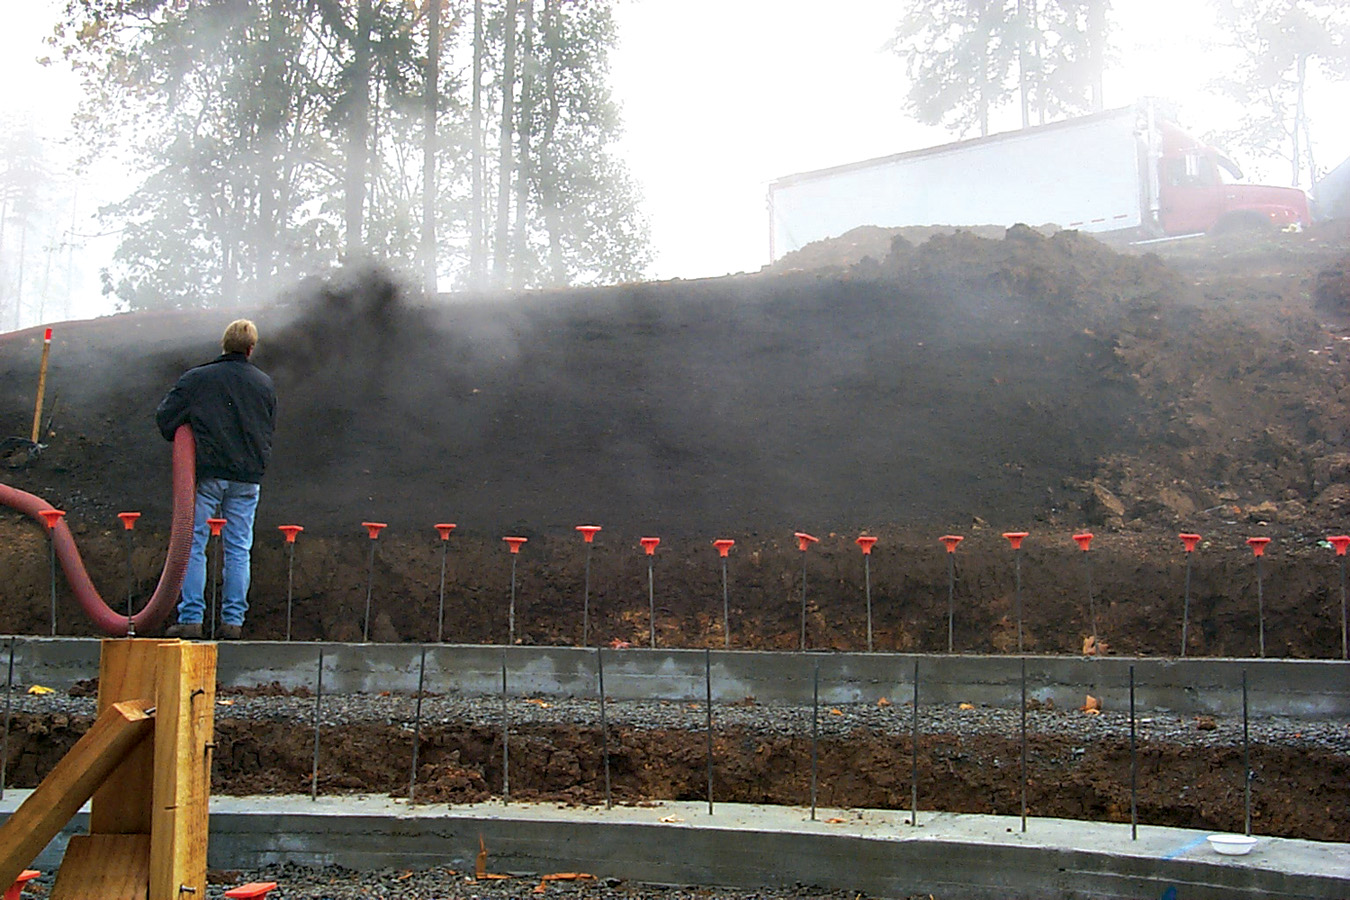 Erosion Control Blanket Installed at a Construction Site with an Express Blower EB-60 Blower Truck